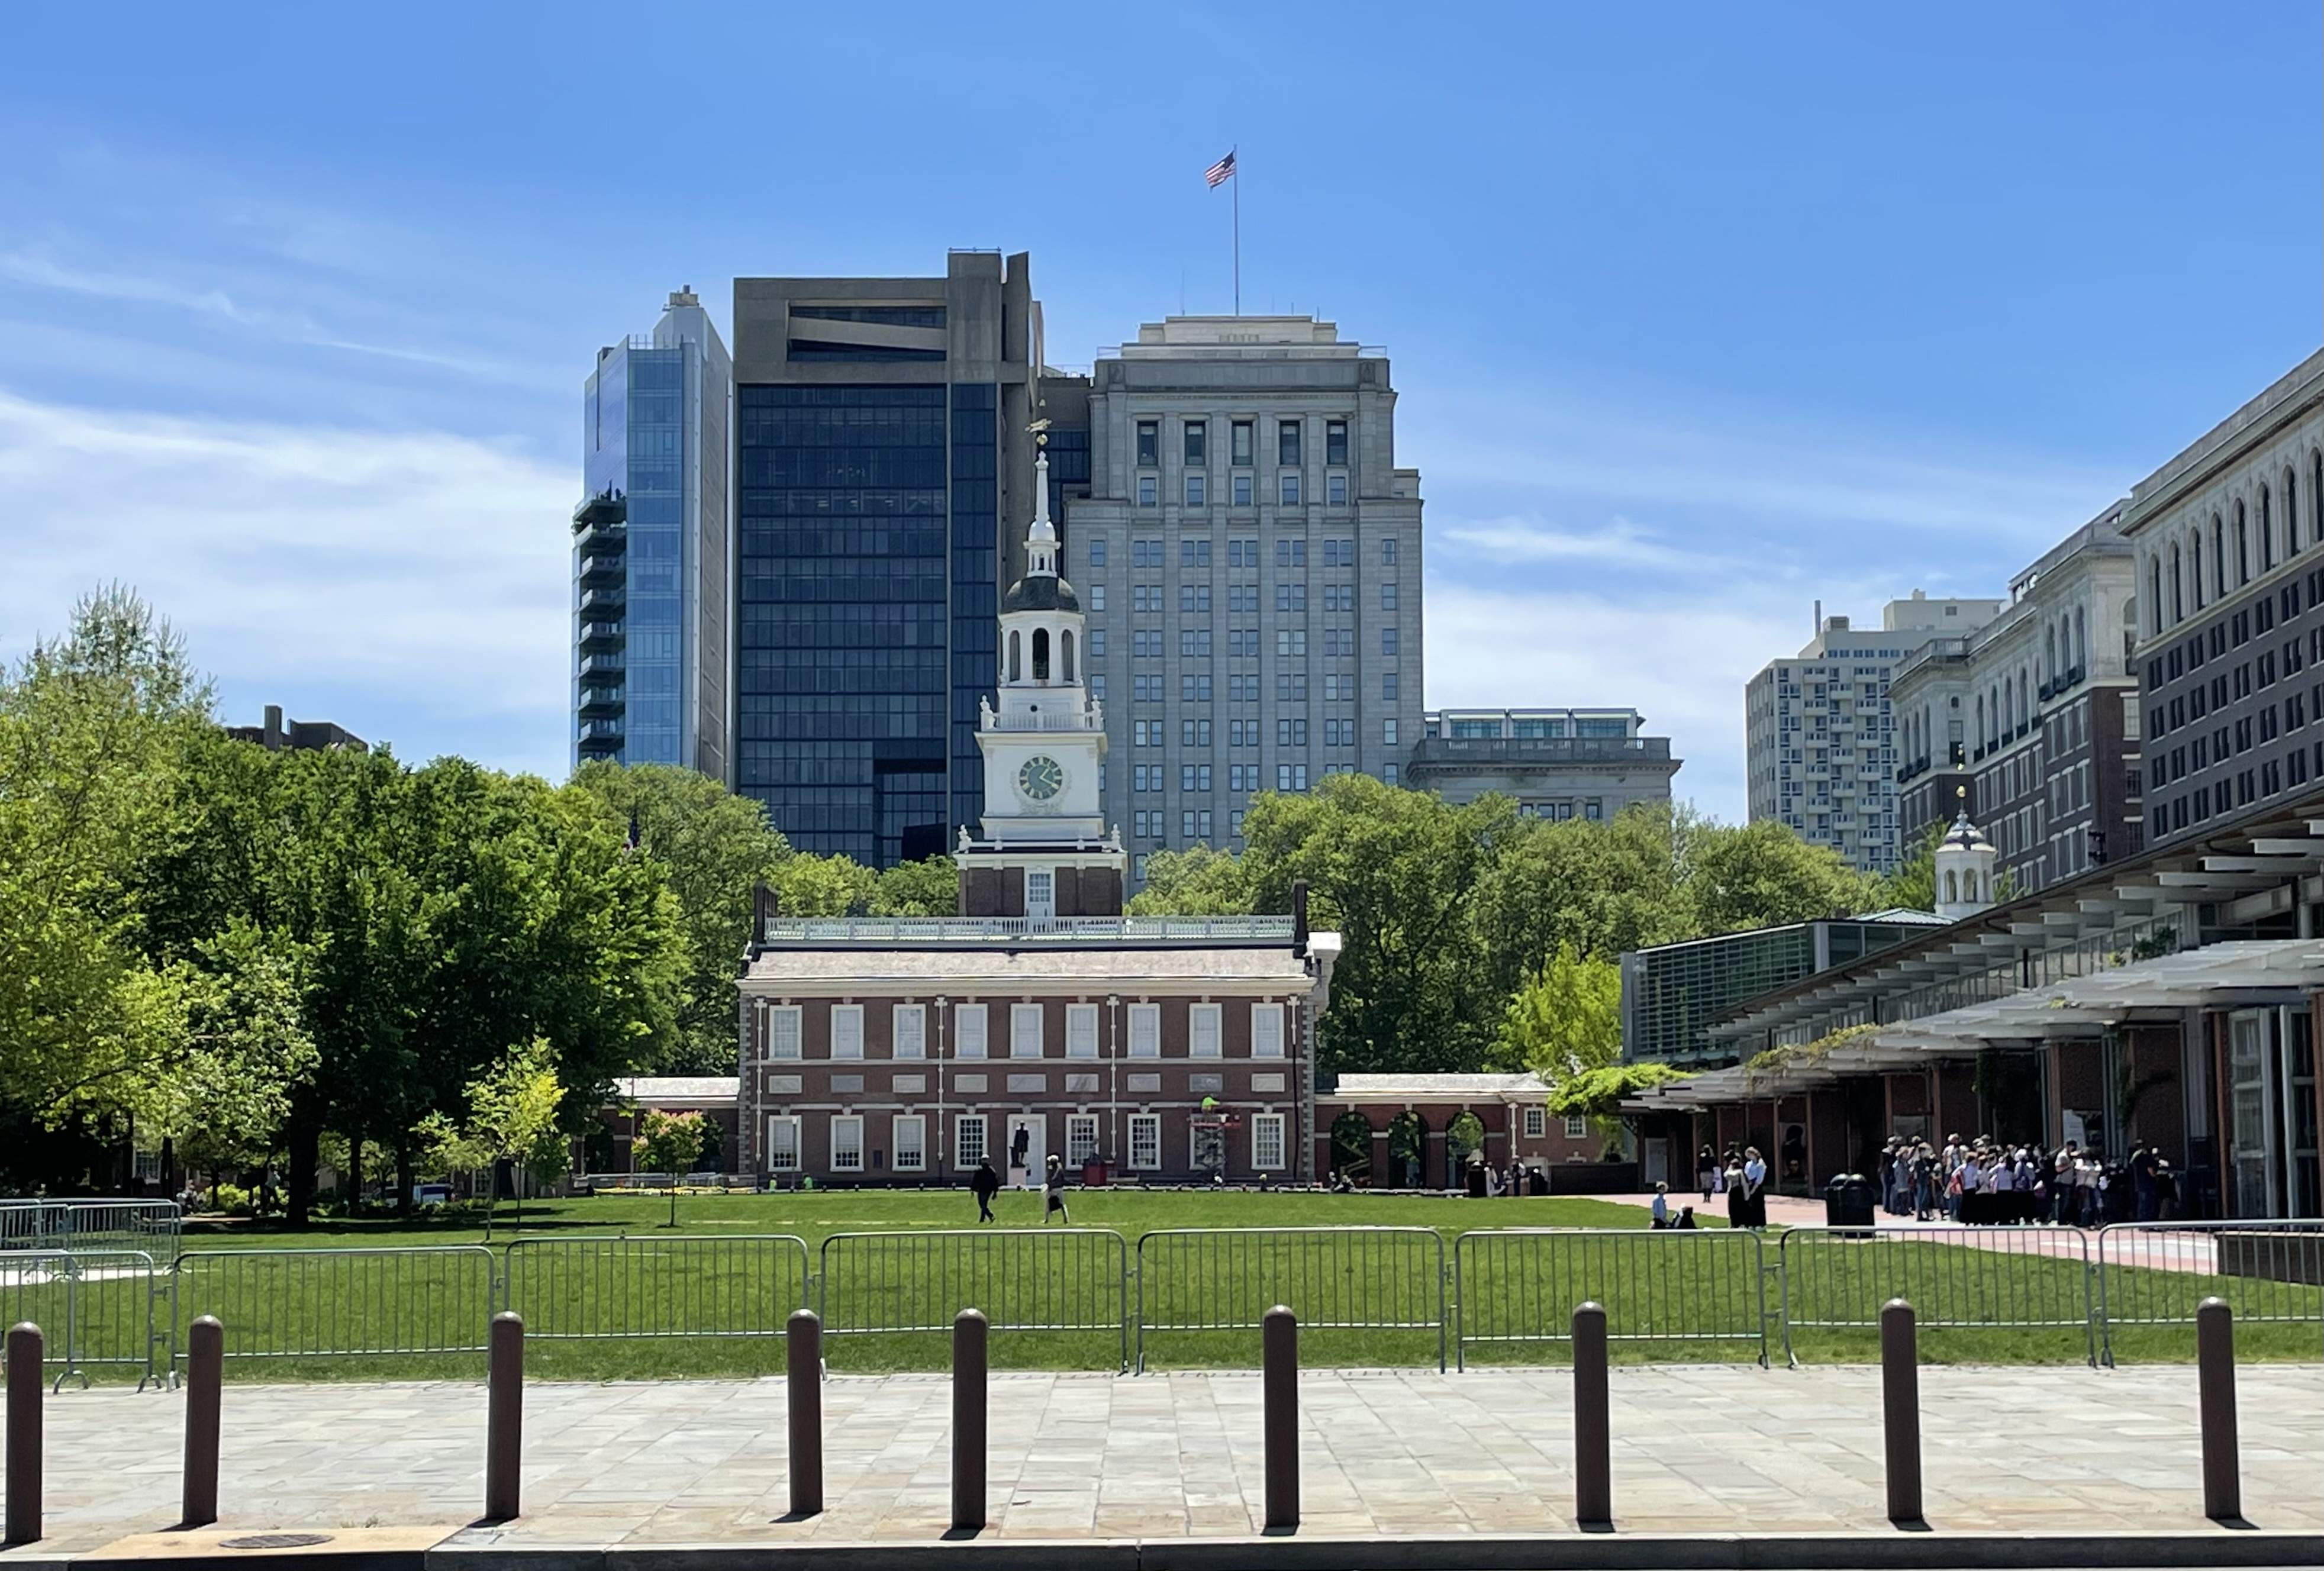 The long line to view The Liberty Bell, Independence Hall, Philadelphia